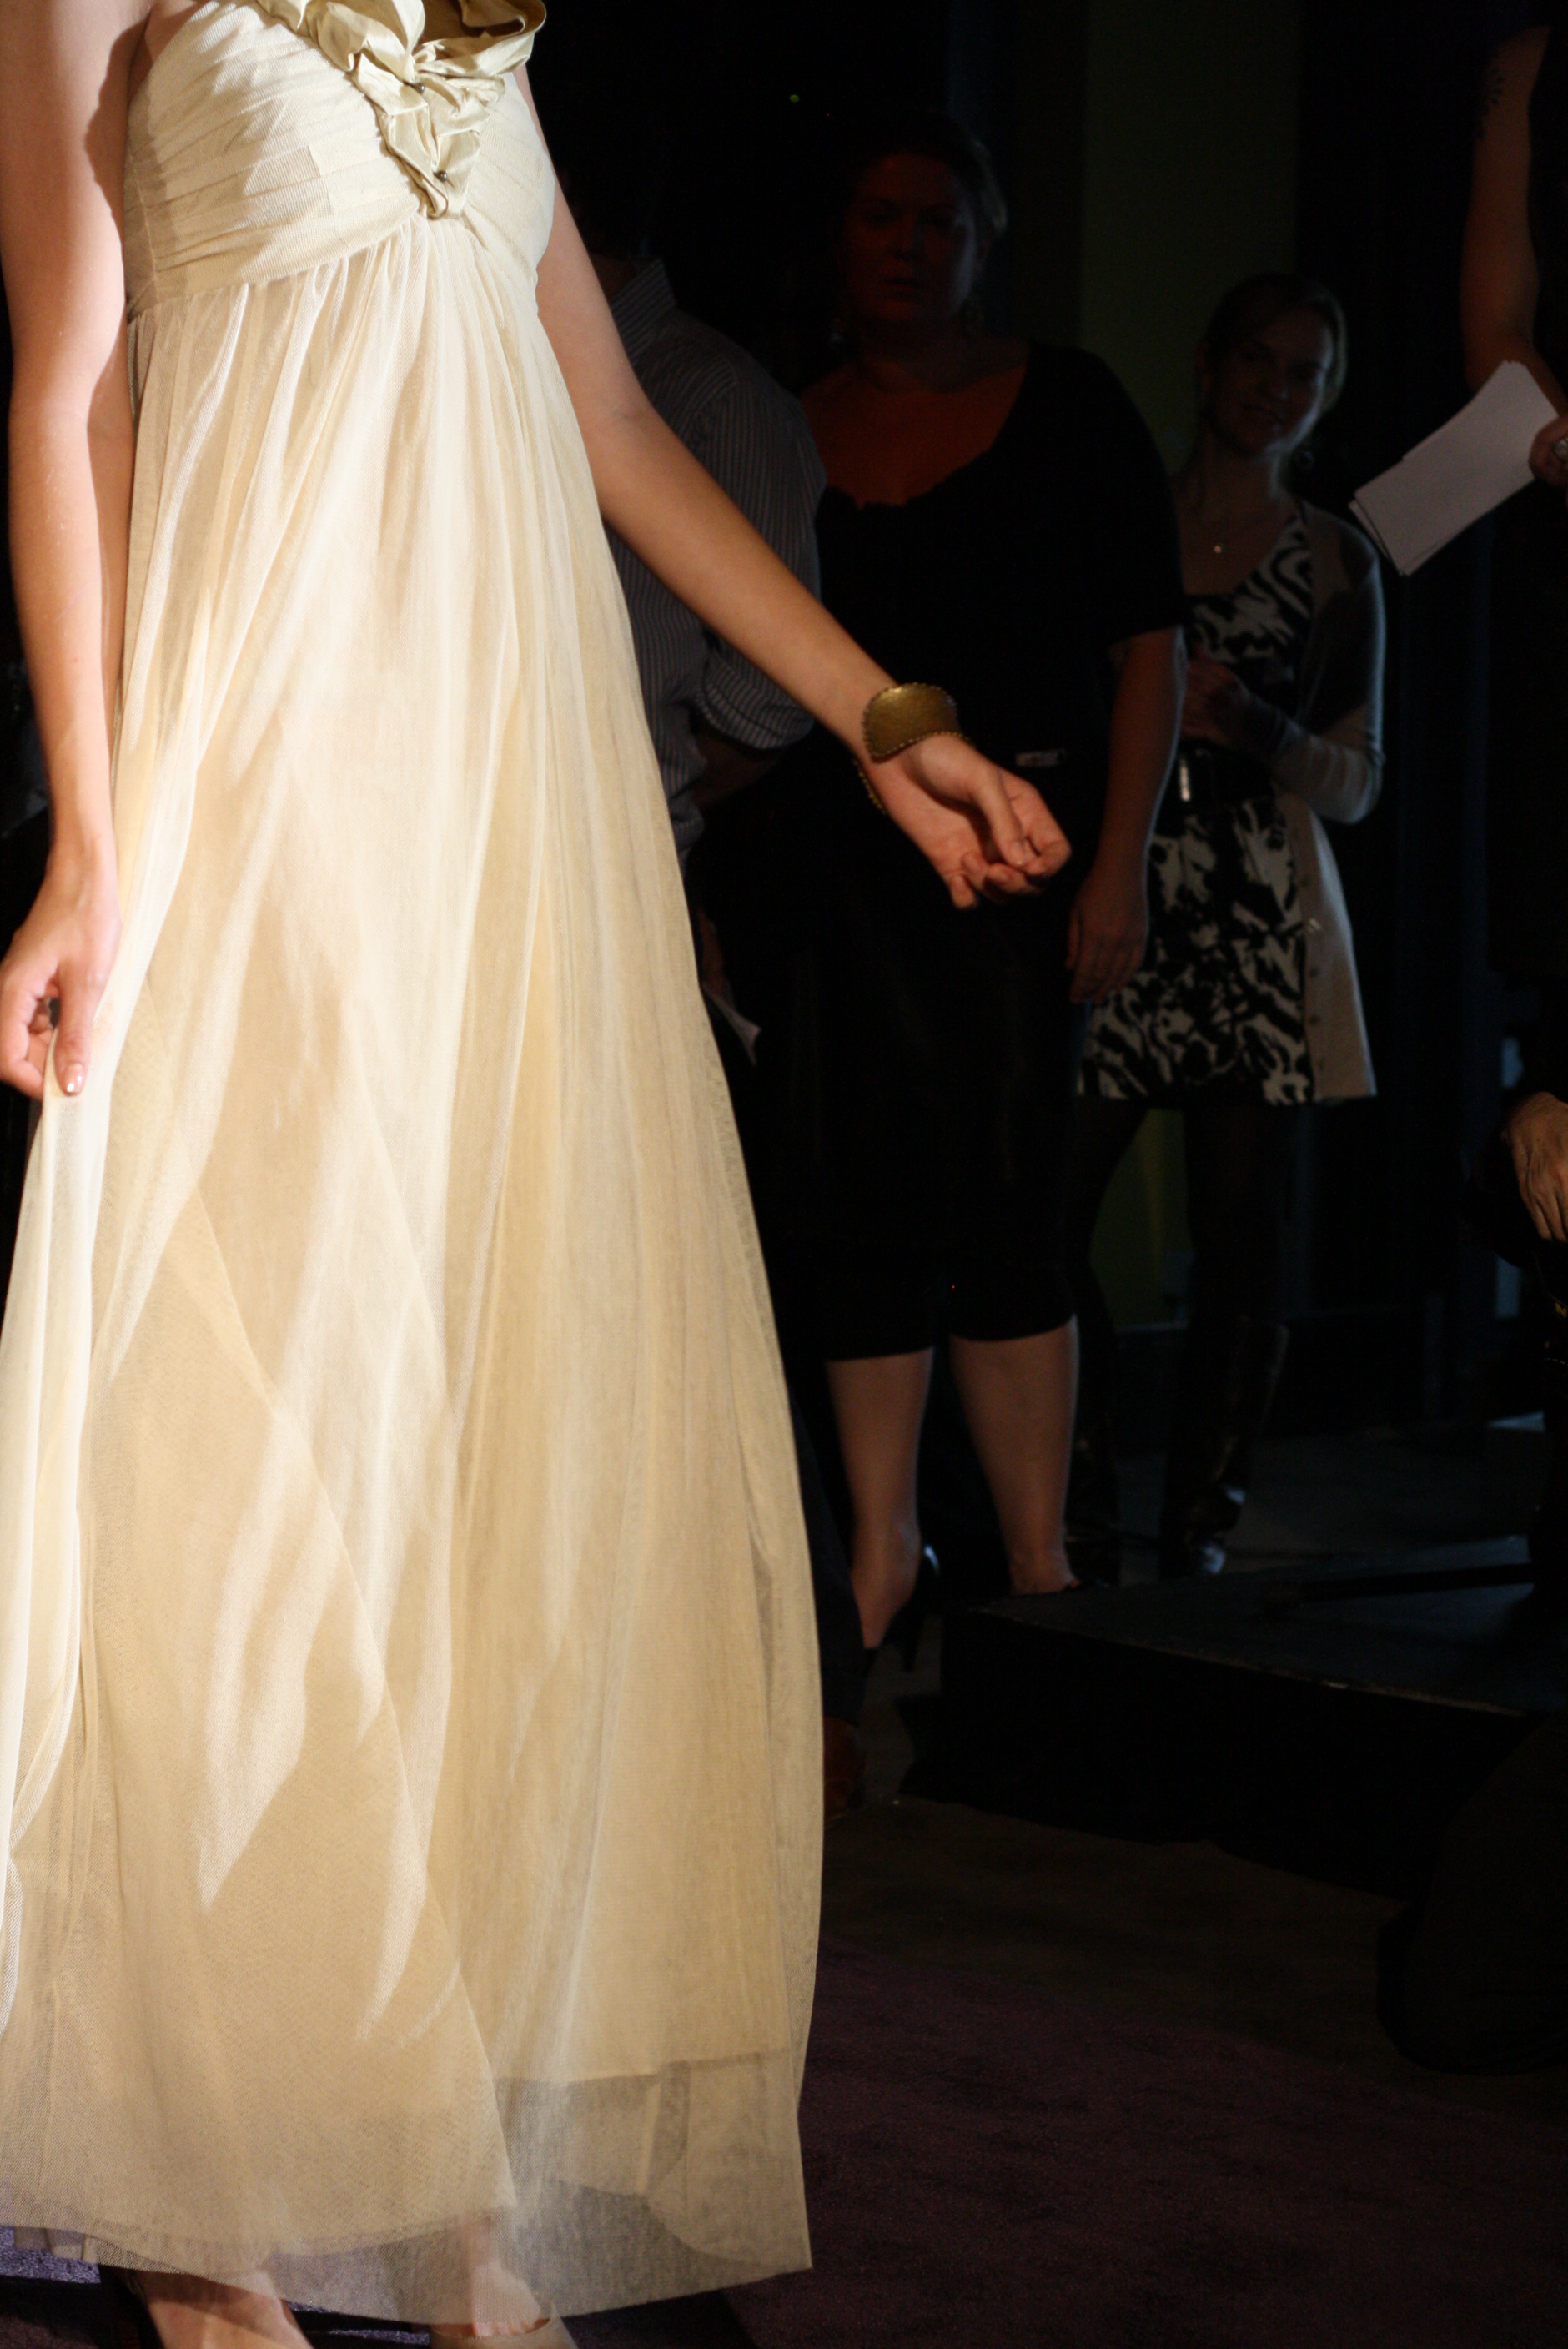 Detail of model's skirt - long white and flowing.